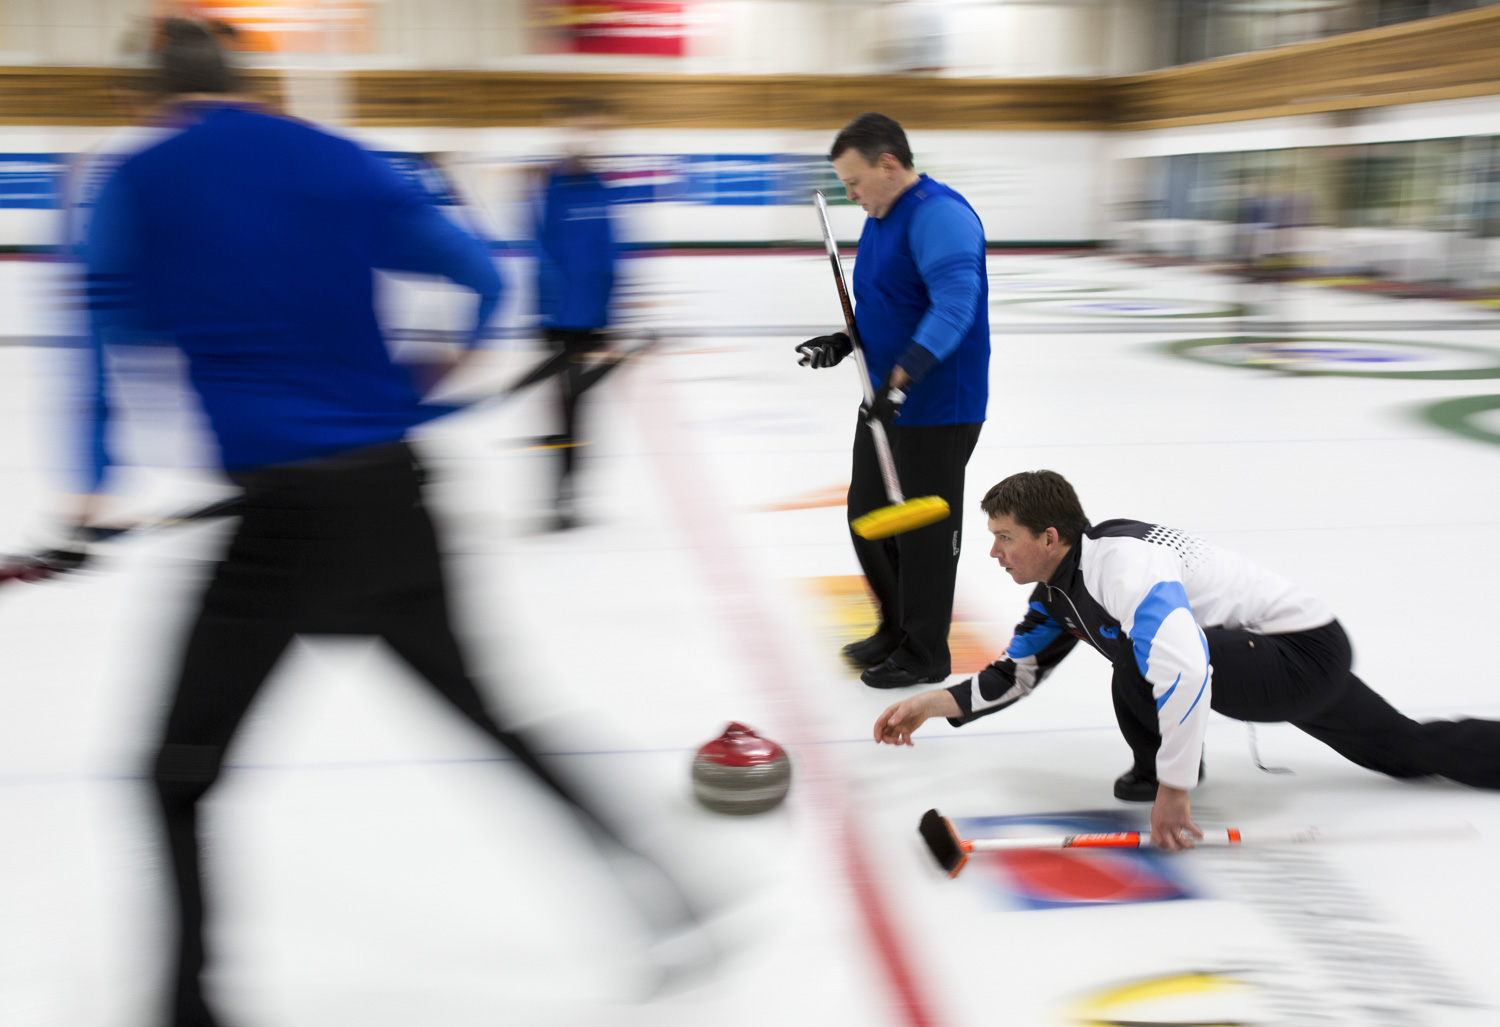 Team Solberg competes in the Men's Yukon Curling Championships to win a berth to the Briers.